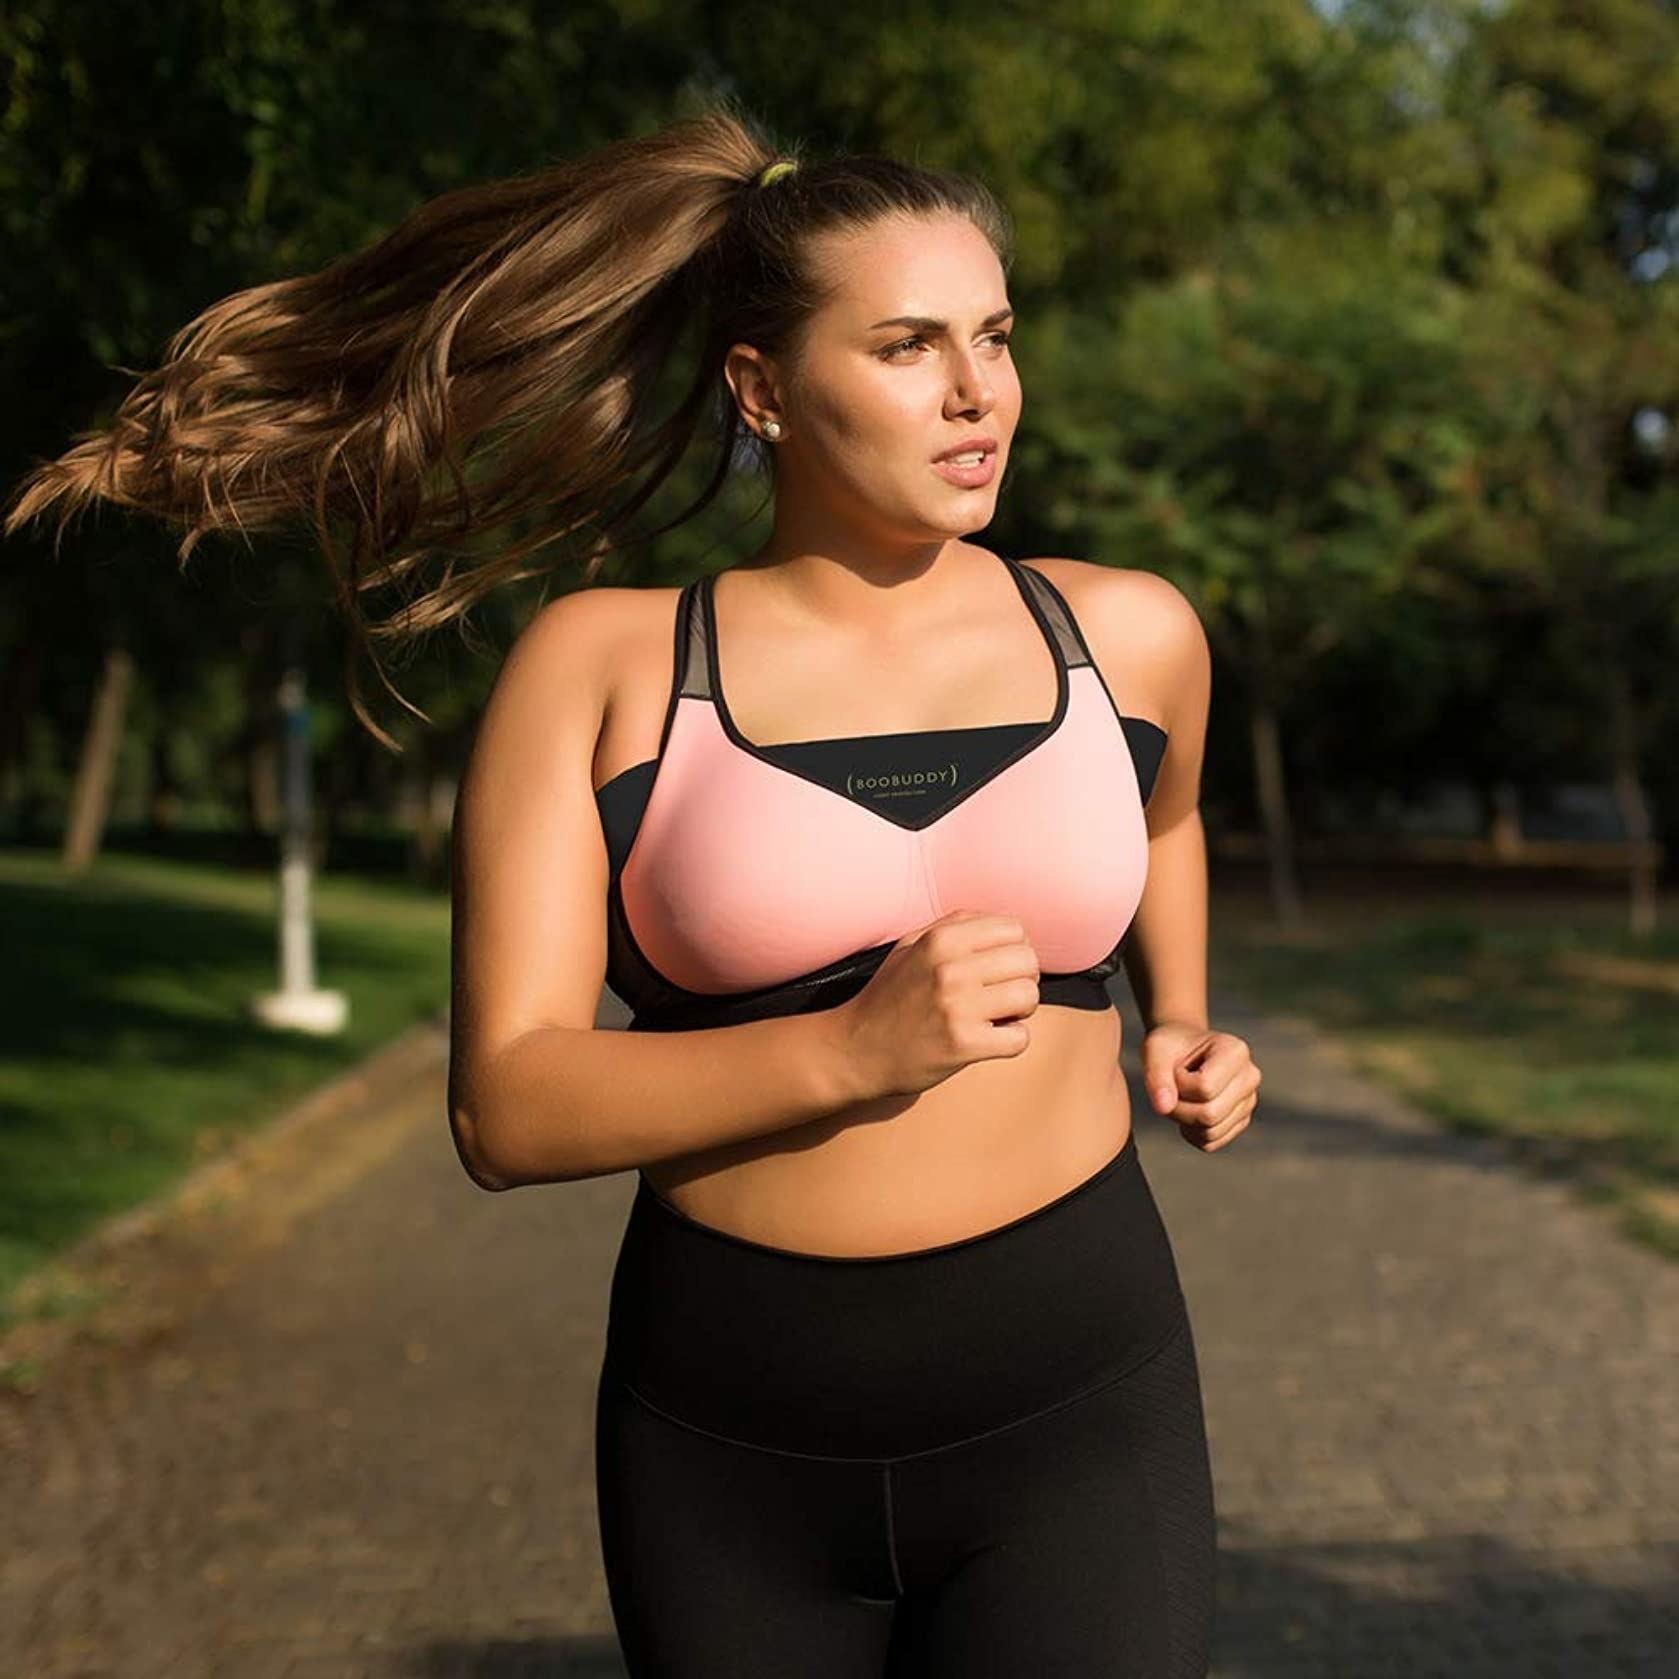 Model running while wearing the band under her sports bra